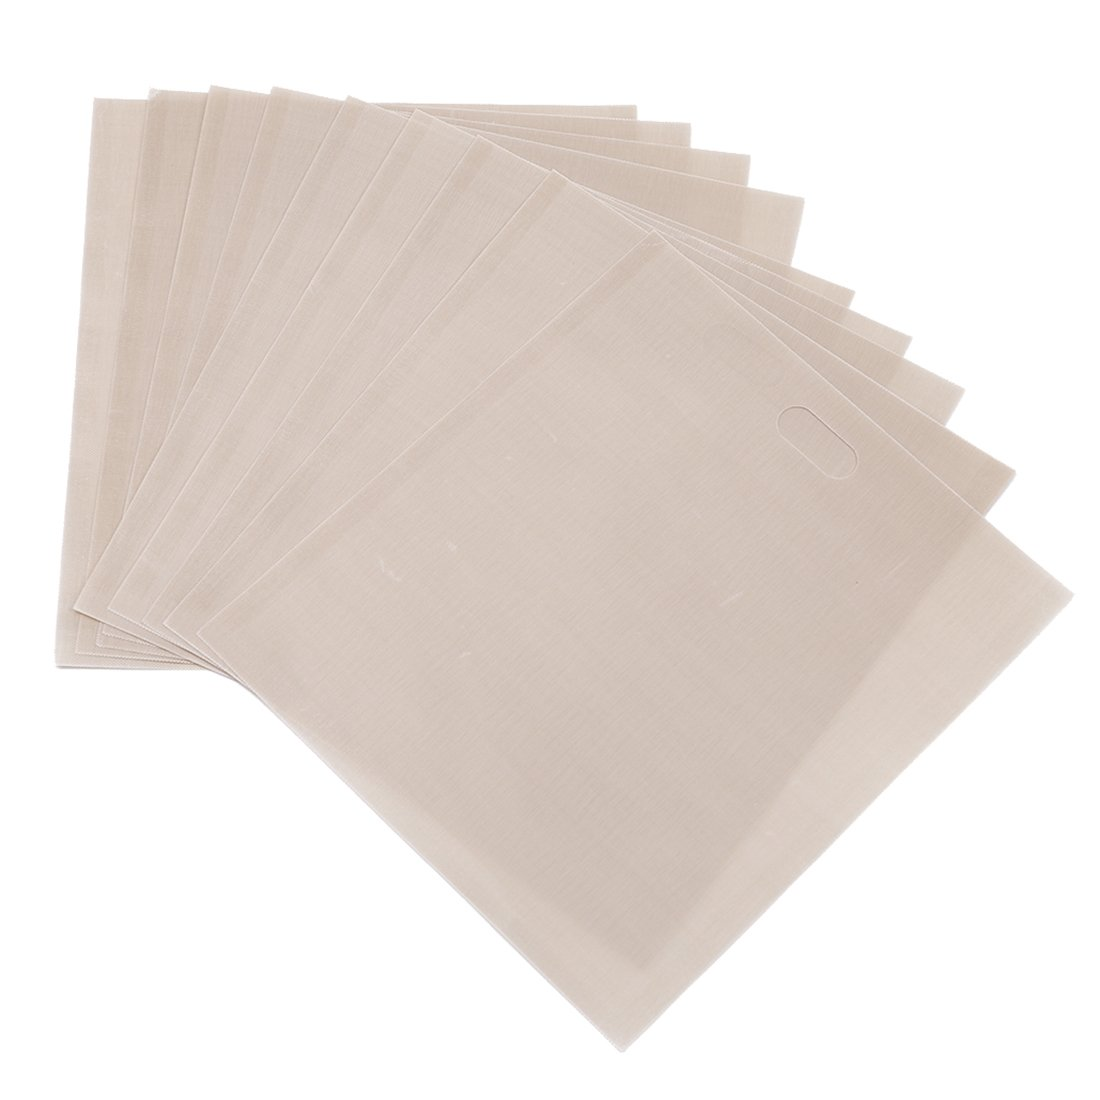 Tosnail 10 Pack Non Stick Reusable Toaster Bags - Beige